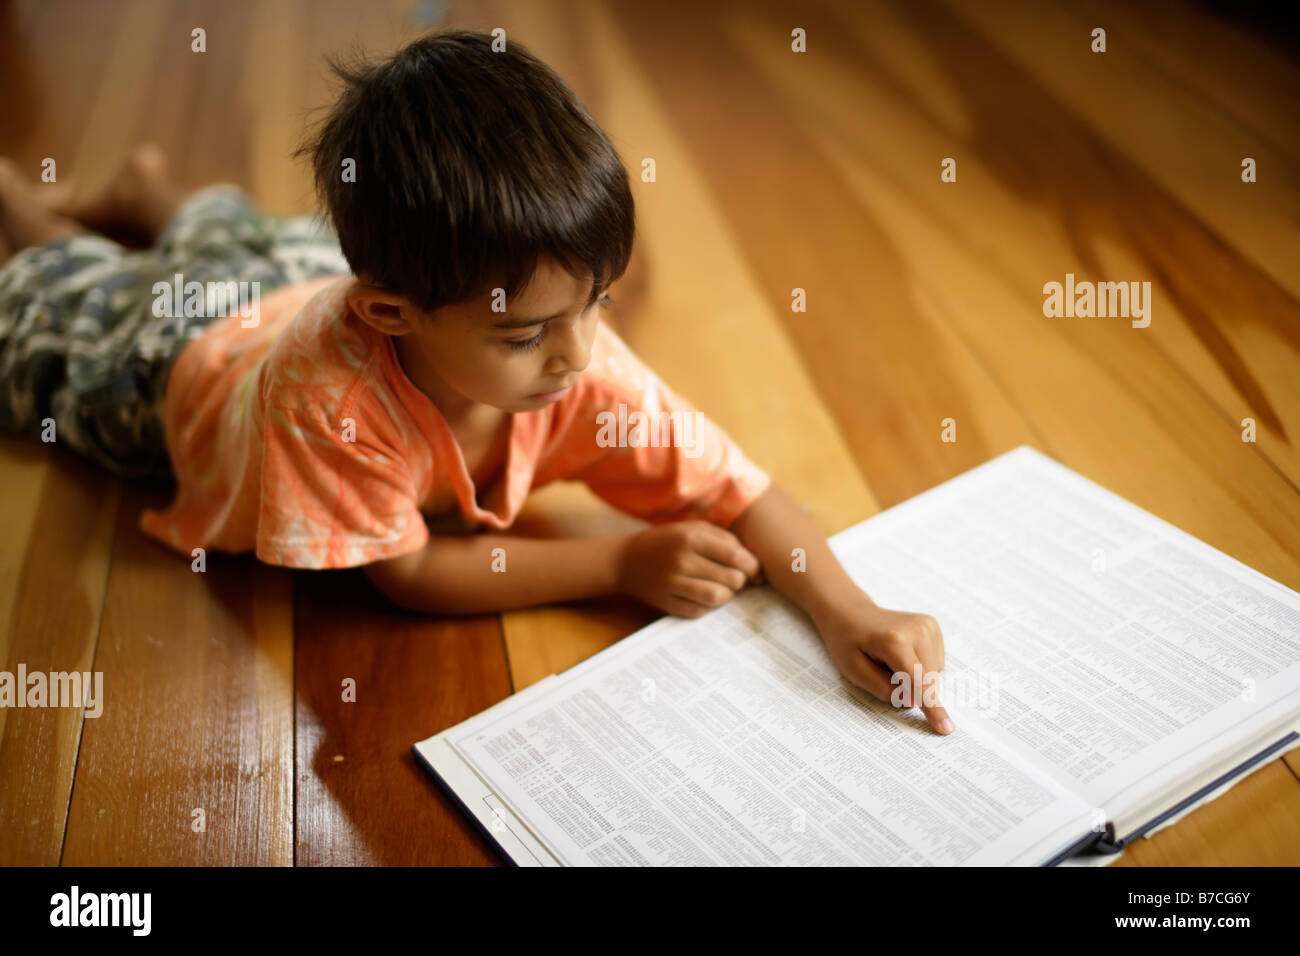 Six year old boy points to index of atlas - Stock Image